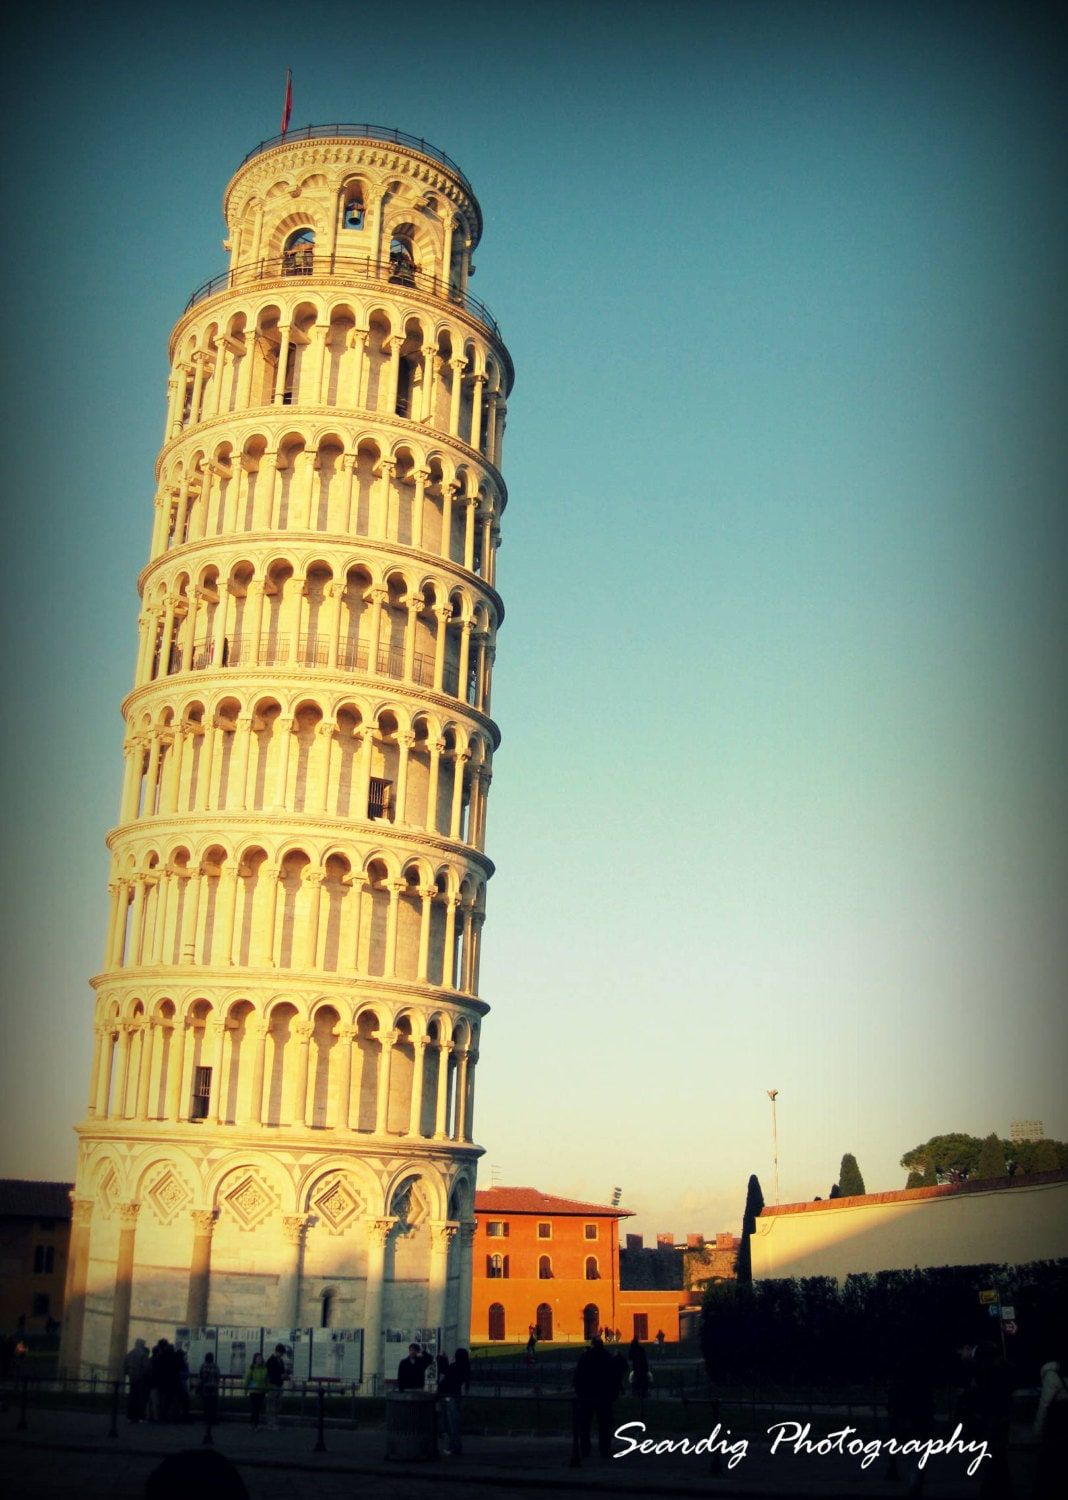 Leaning Tower of Pisa Italy. Architecture Photograph.